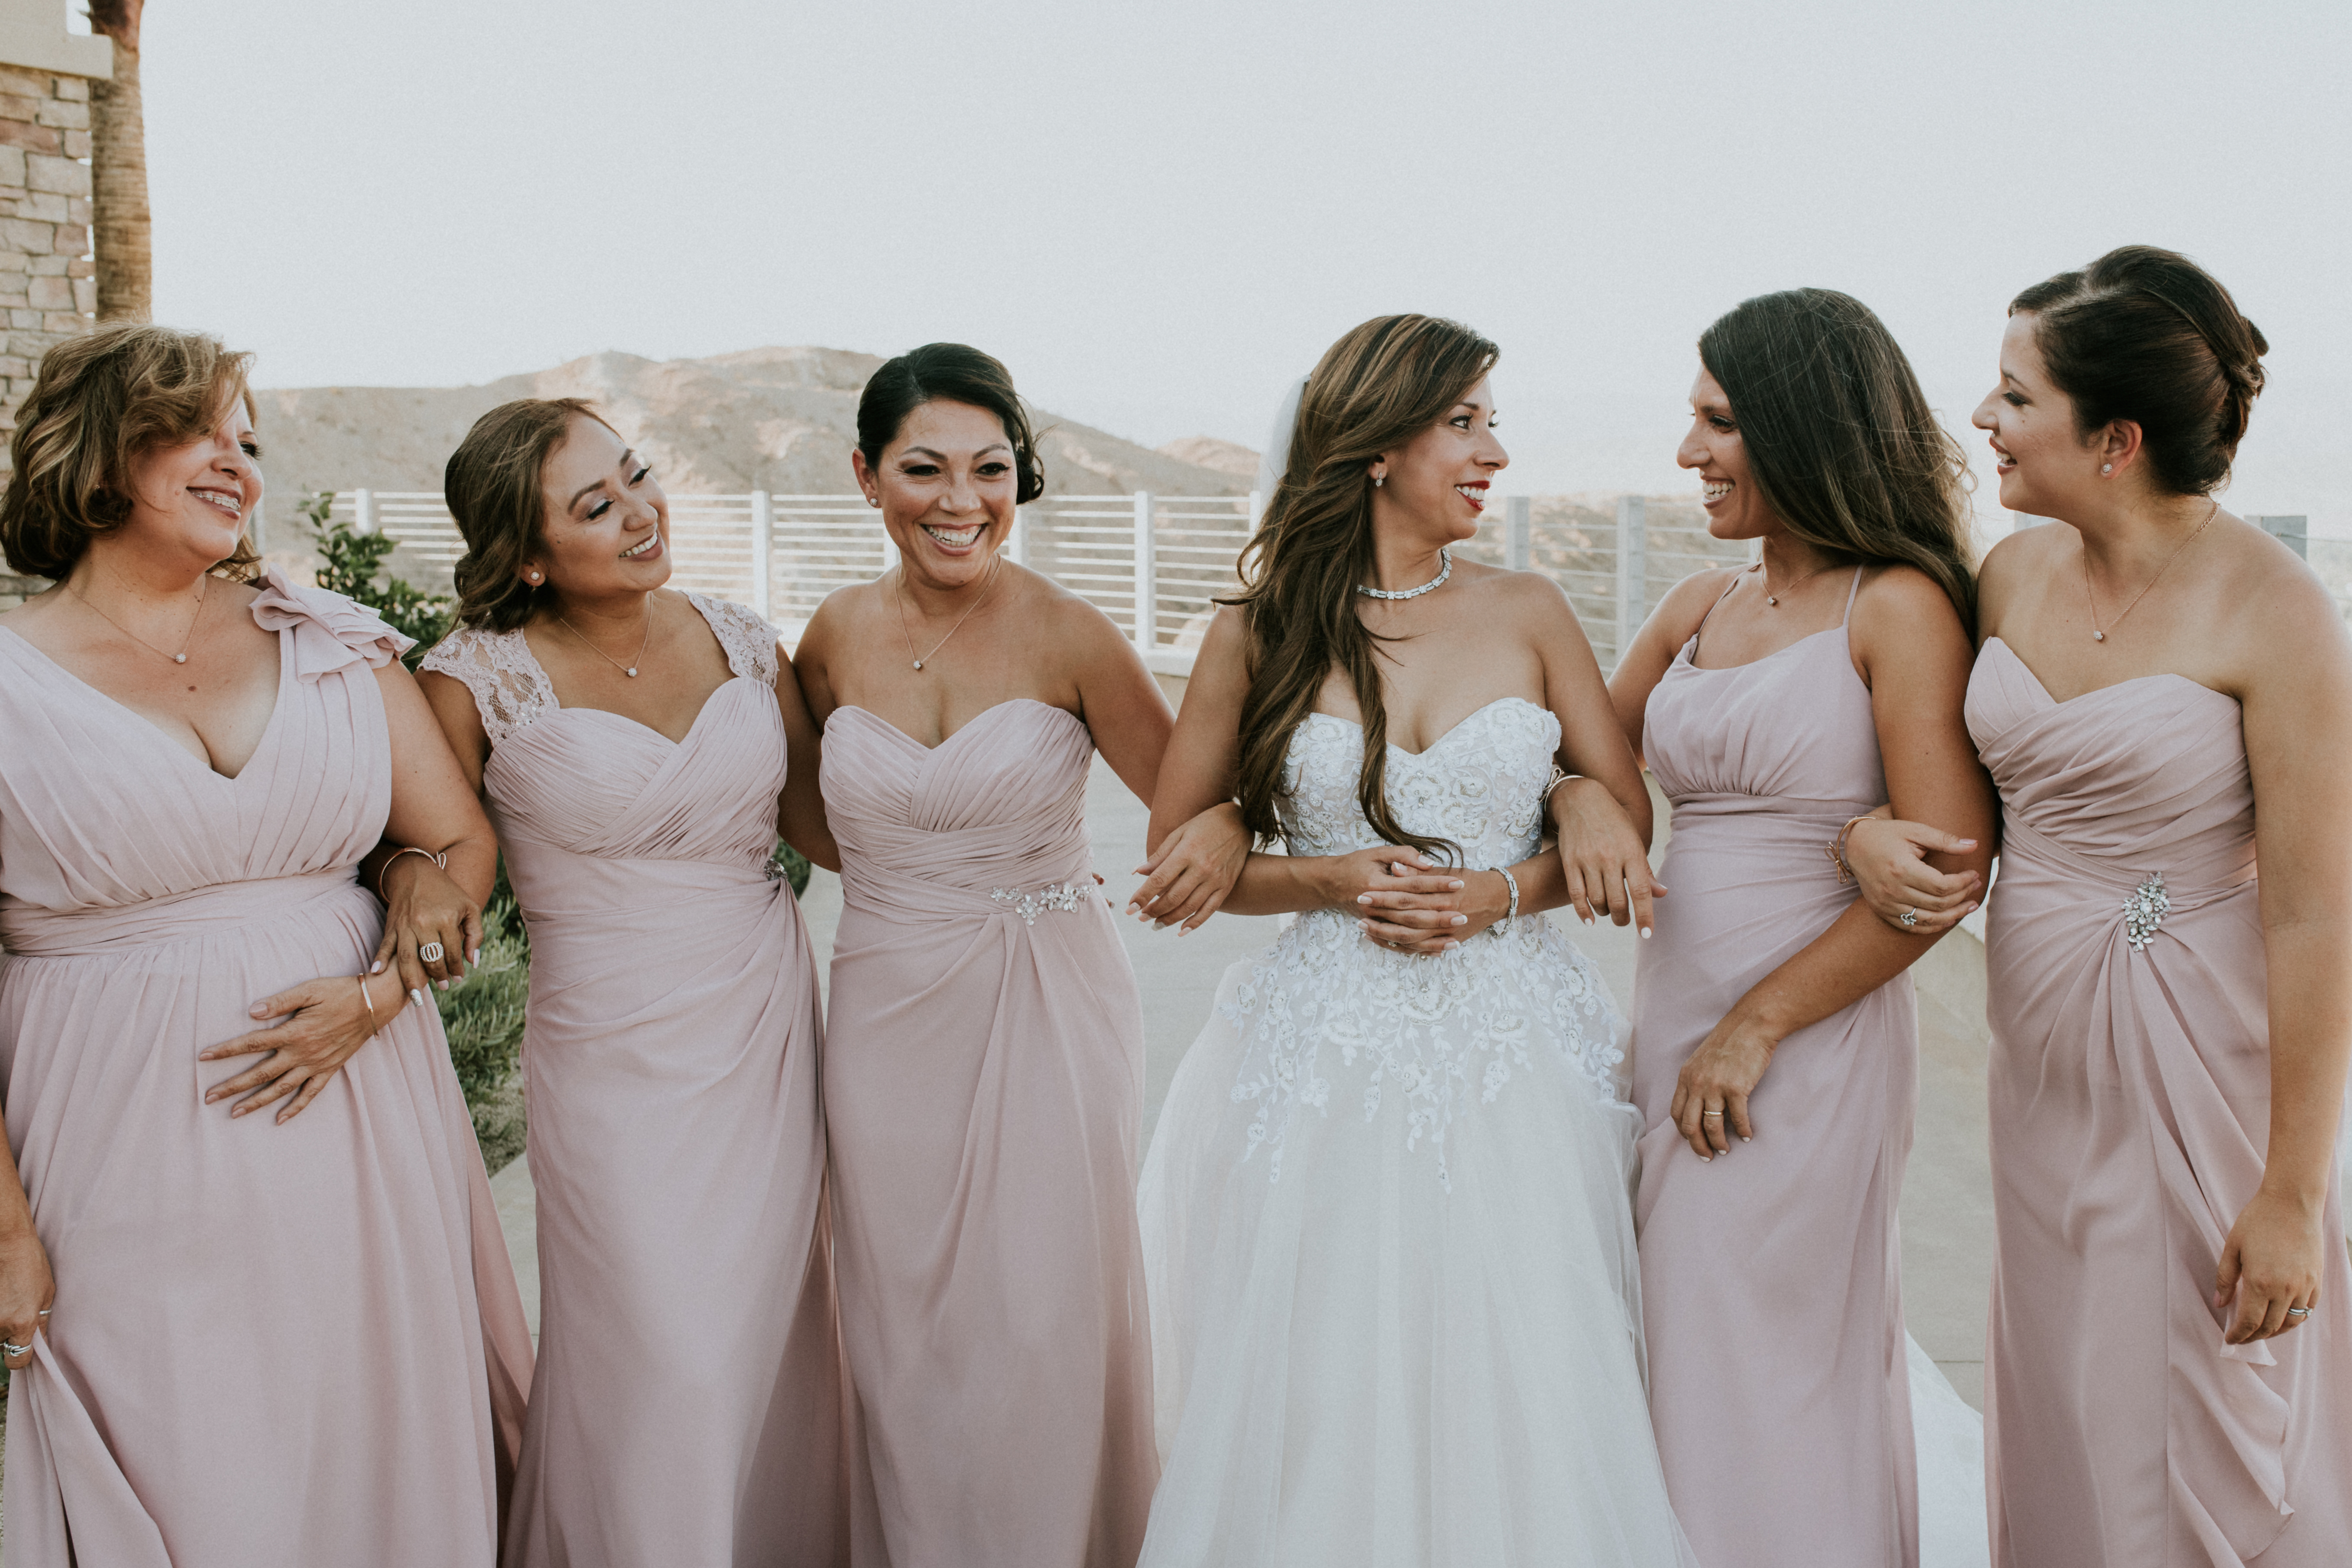 bride with bridal party bridesmaids laughing wedding photography the ritz-carlton rancho mirage